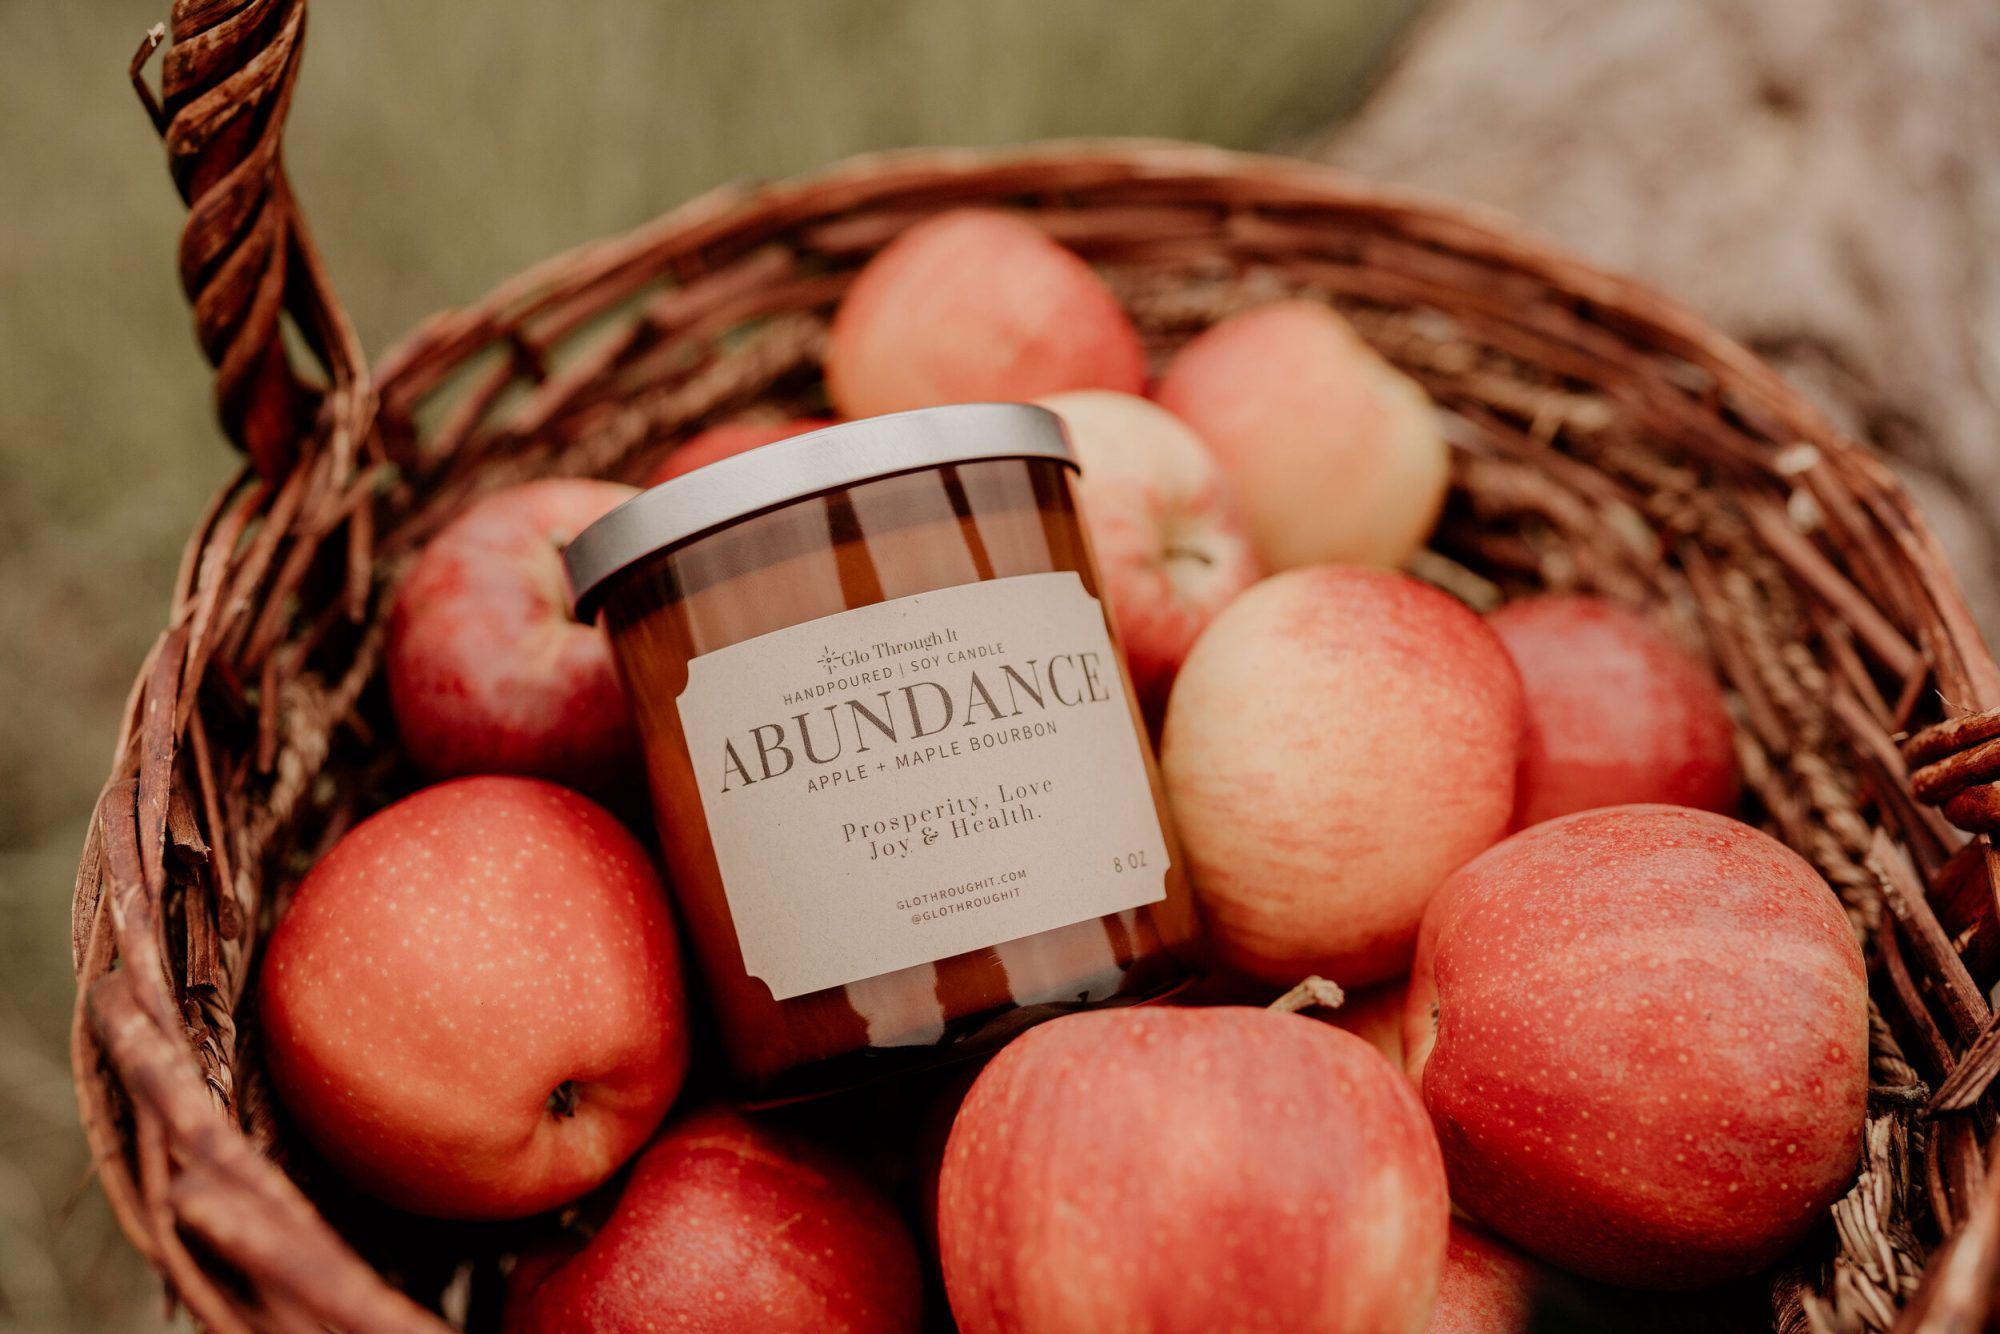 Abundance amber candle in basket of apples